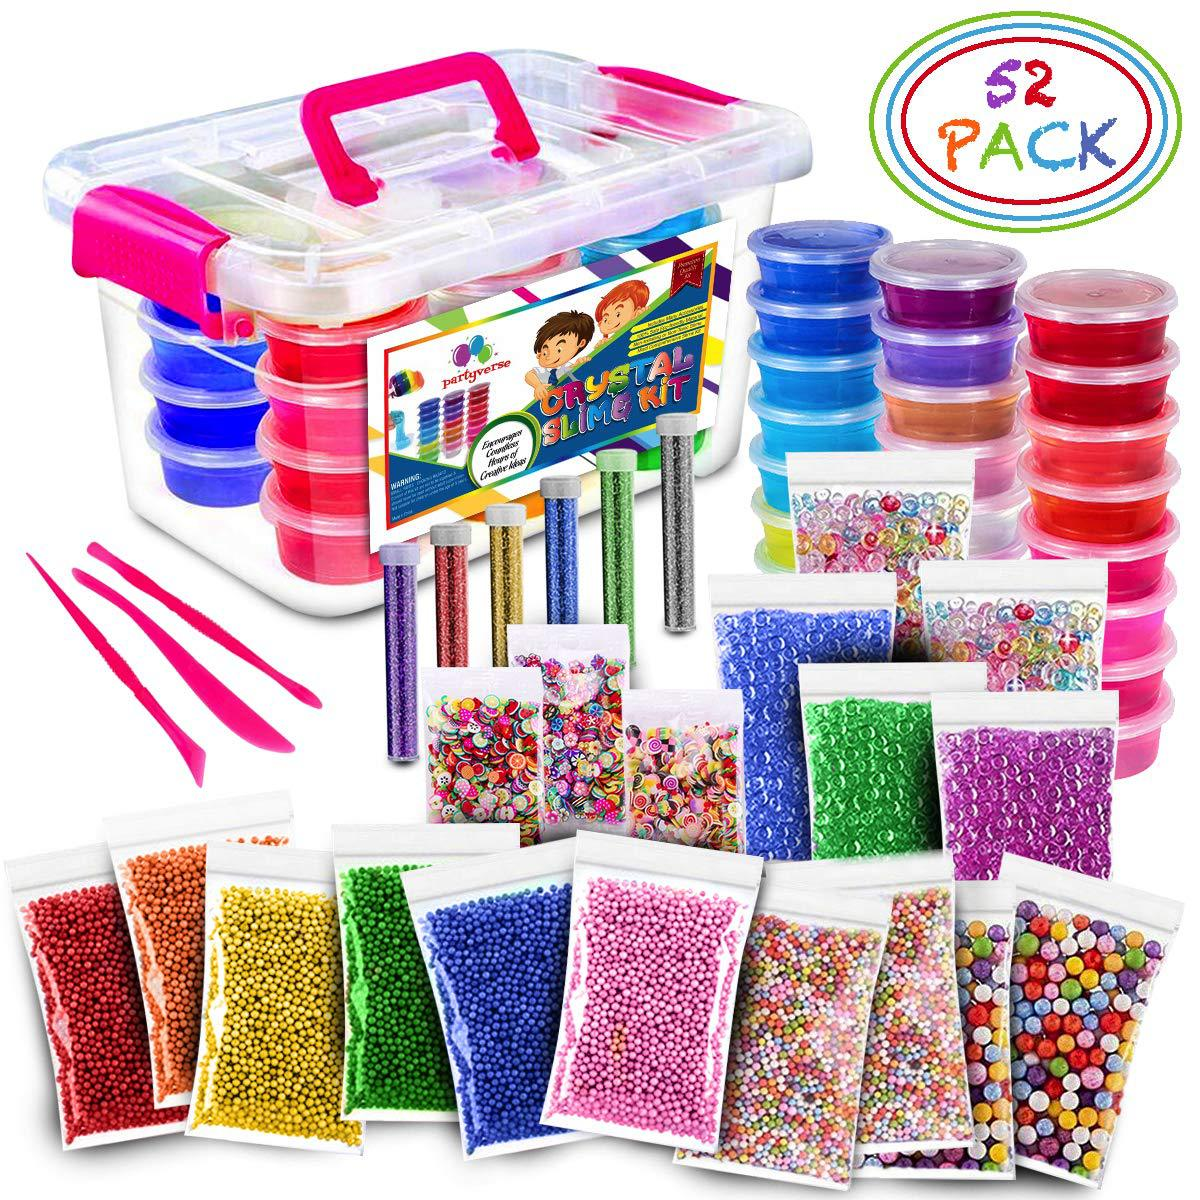 52Pack Fluffy Slime Kit 24 Color Slime Supplies Gifts toys for kids